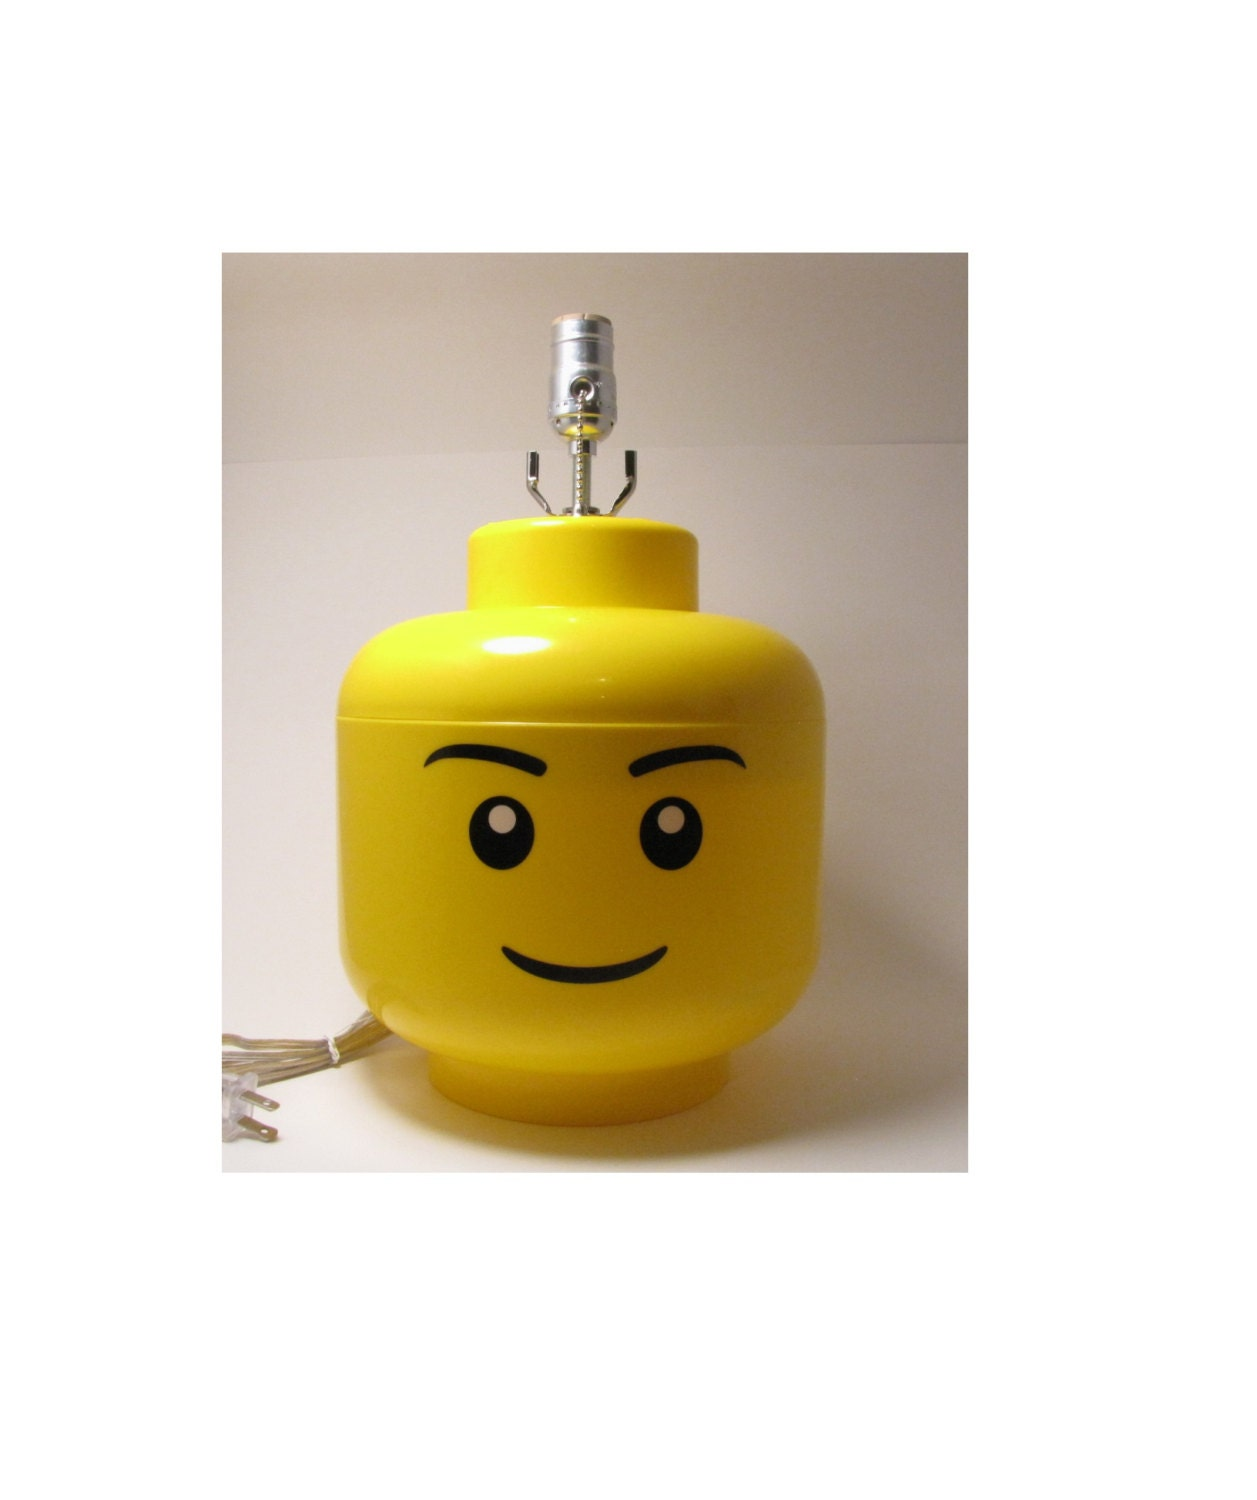 Lego Accessories For Bedroom Large Male Lego Minifigure Head Lamp Perfect Lego Themed